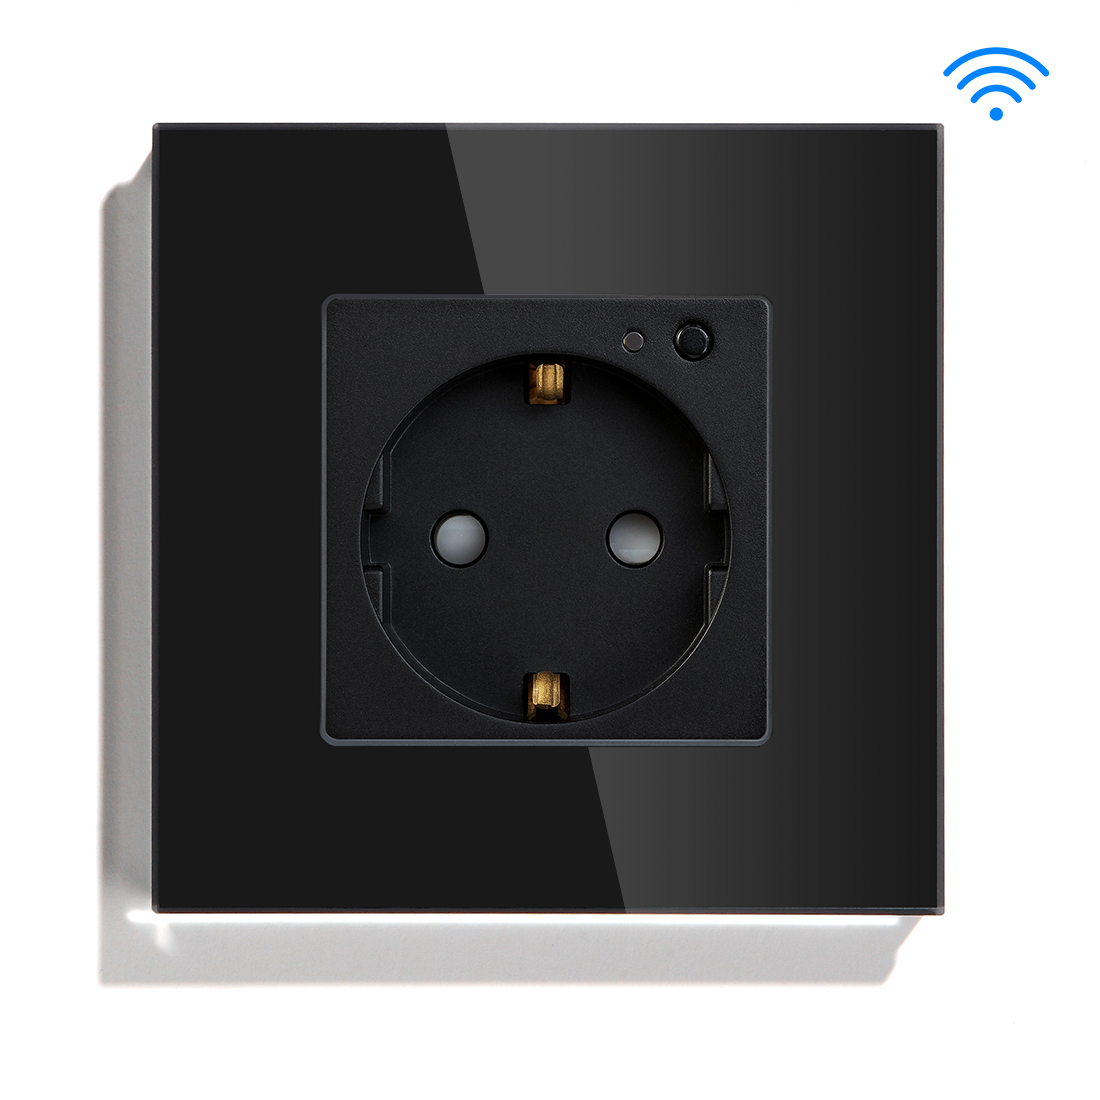 BSEED <font><b>EU</b></font> Standard Wifi Wall <font><b>Socket</b></font> Smart <font><b>Socket</b></font> Square WIFI <font><b>Socket</b></font> Supports For Tuya Google Smart Home White Black Golden Colors image